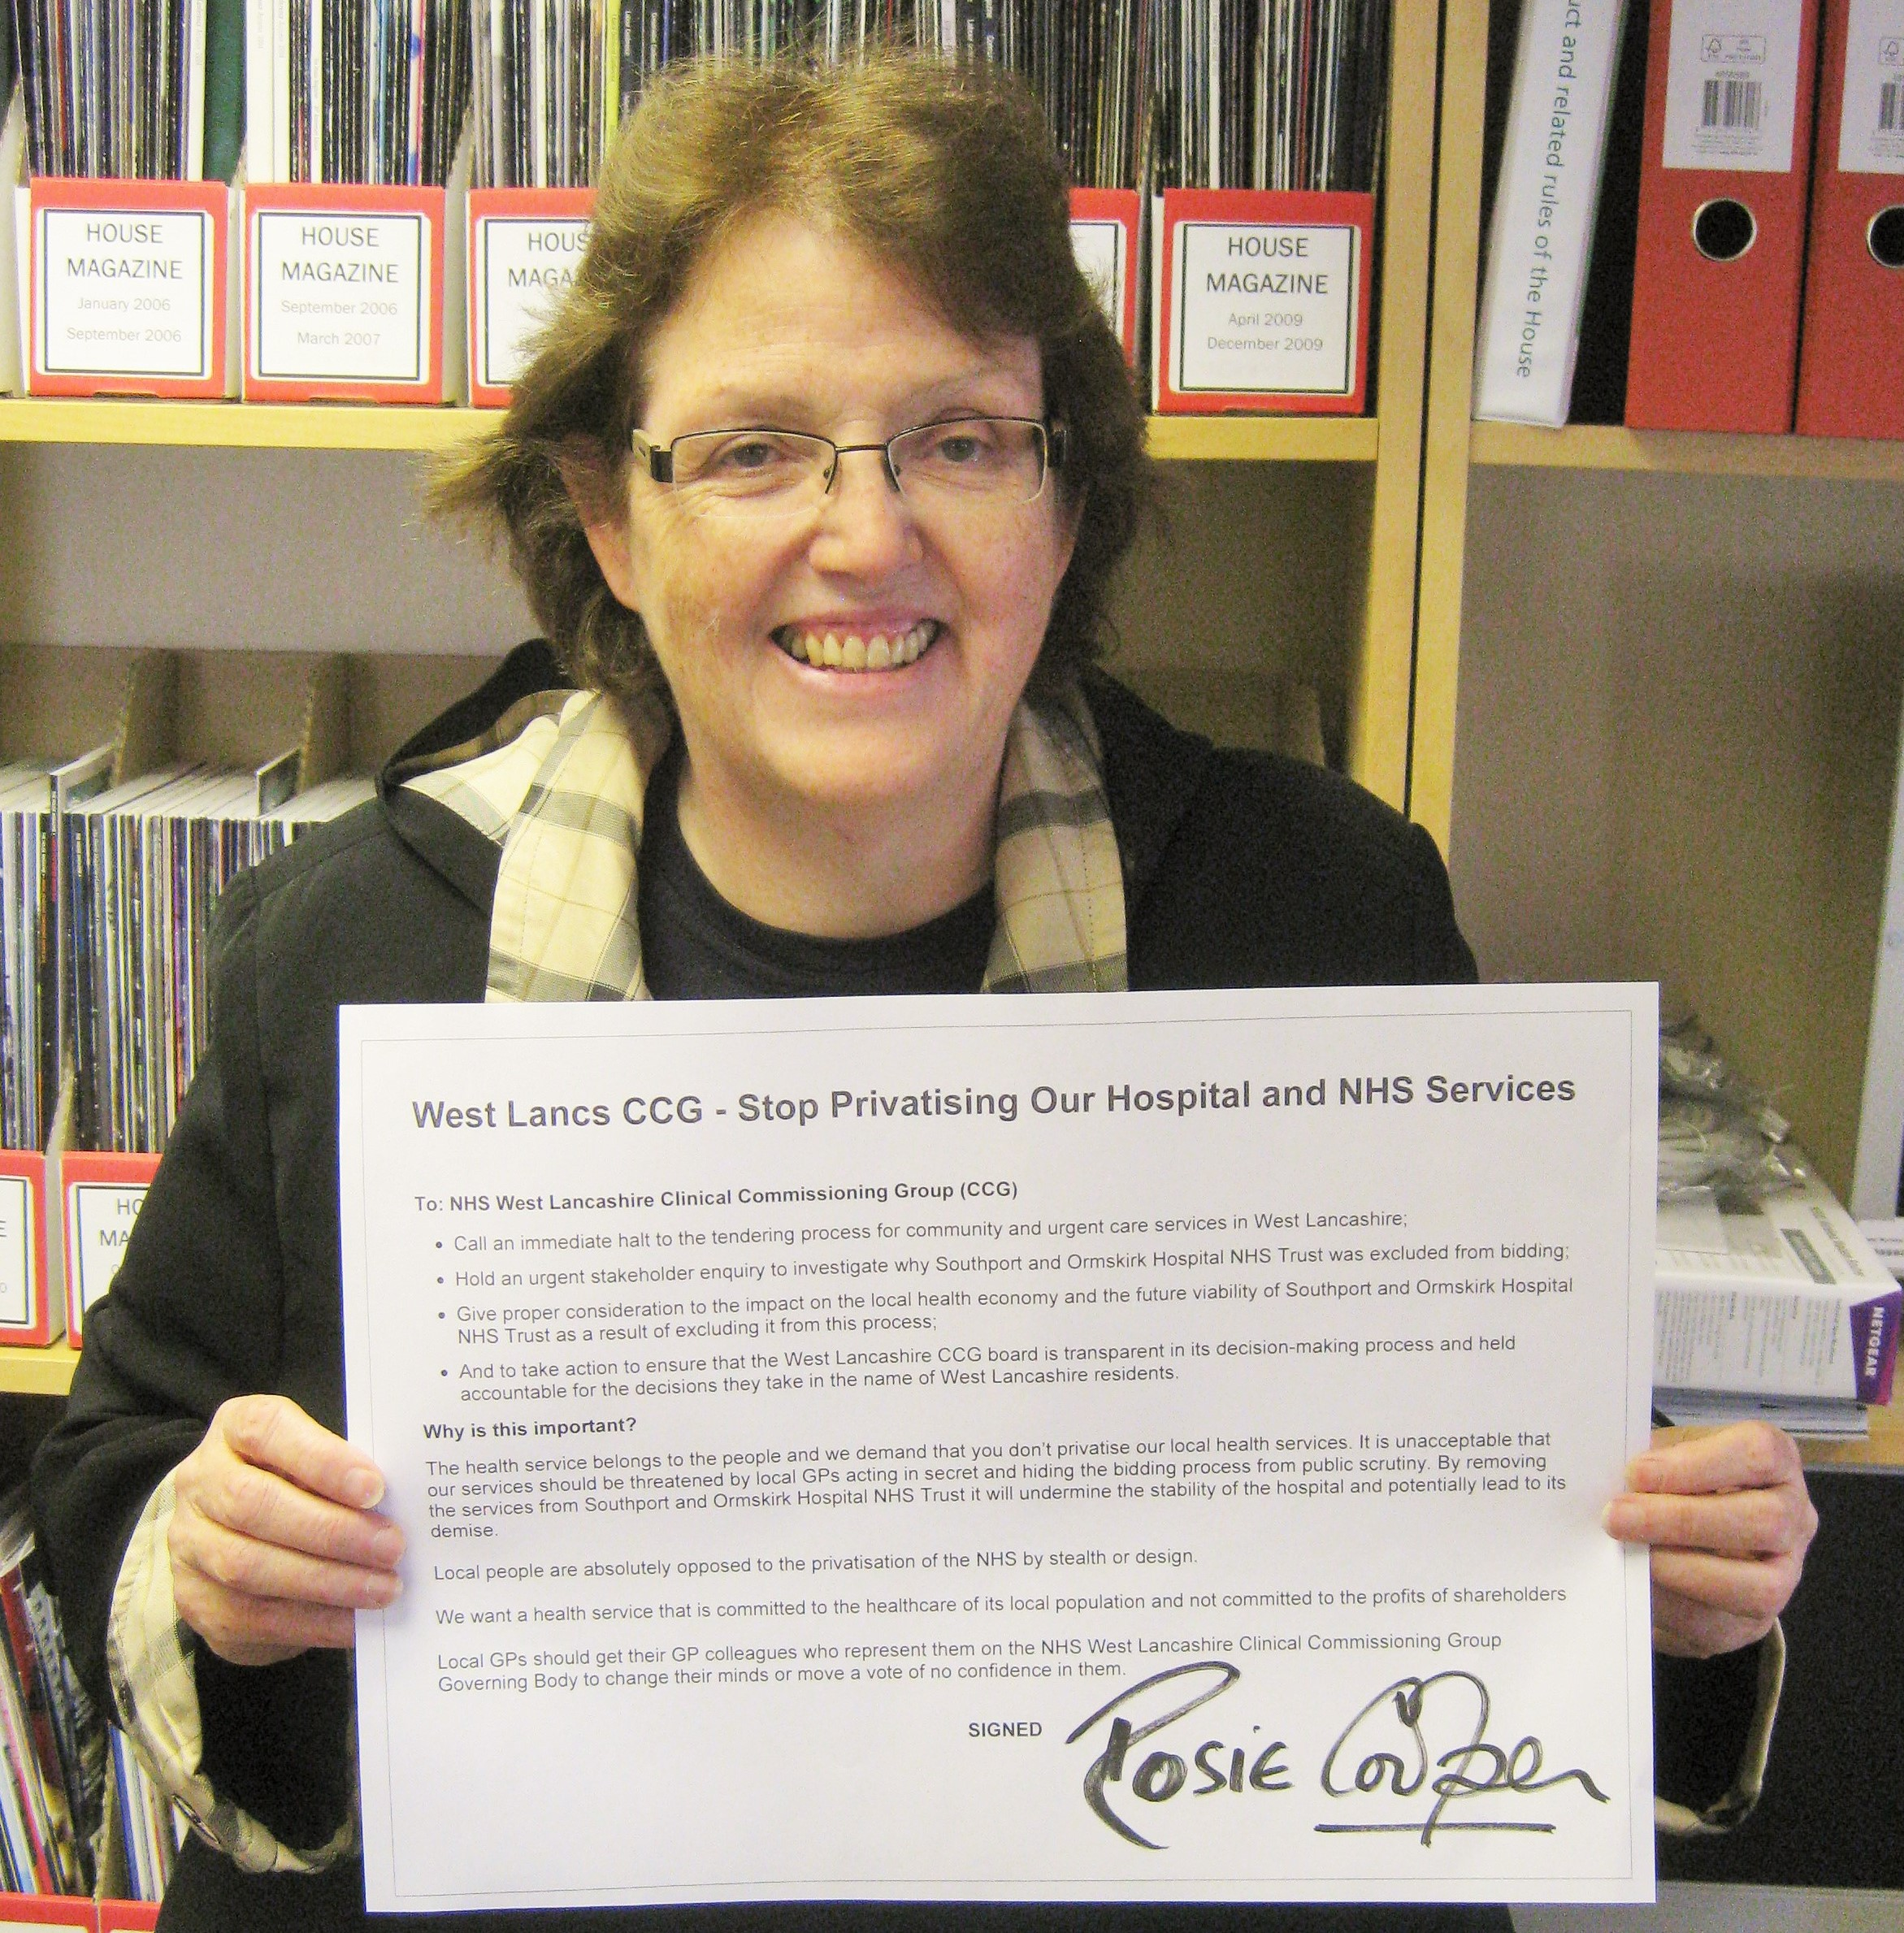 Rosie_Cooper_MP_with_petition.JPG